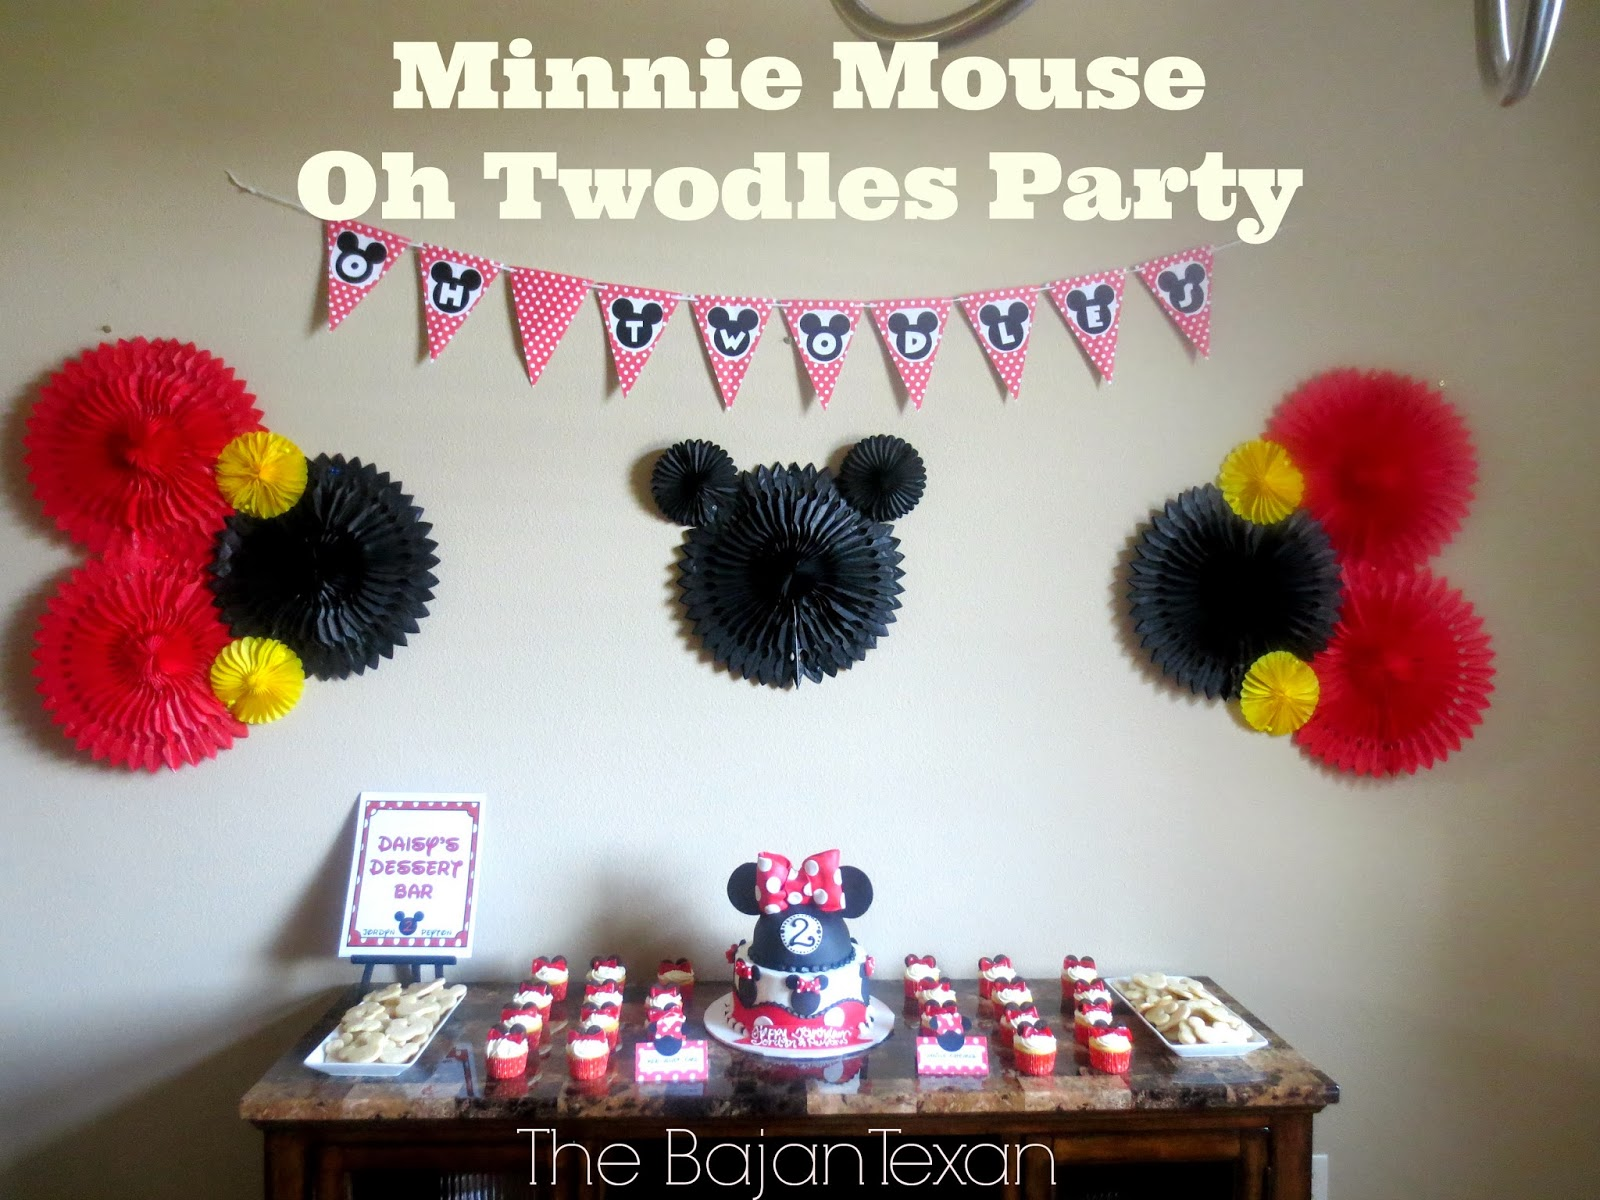 Minnie mouse oh twodles diy birthday party the bajan texan minnie mouse oh twodles diy birthday party amipublicfo Choice Image